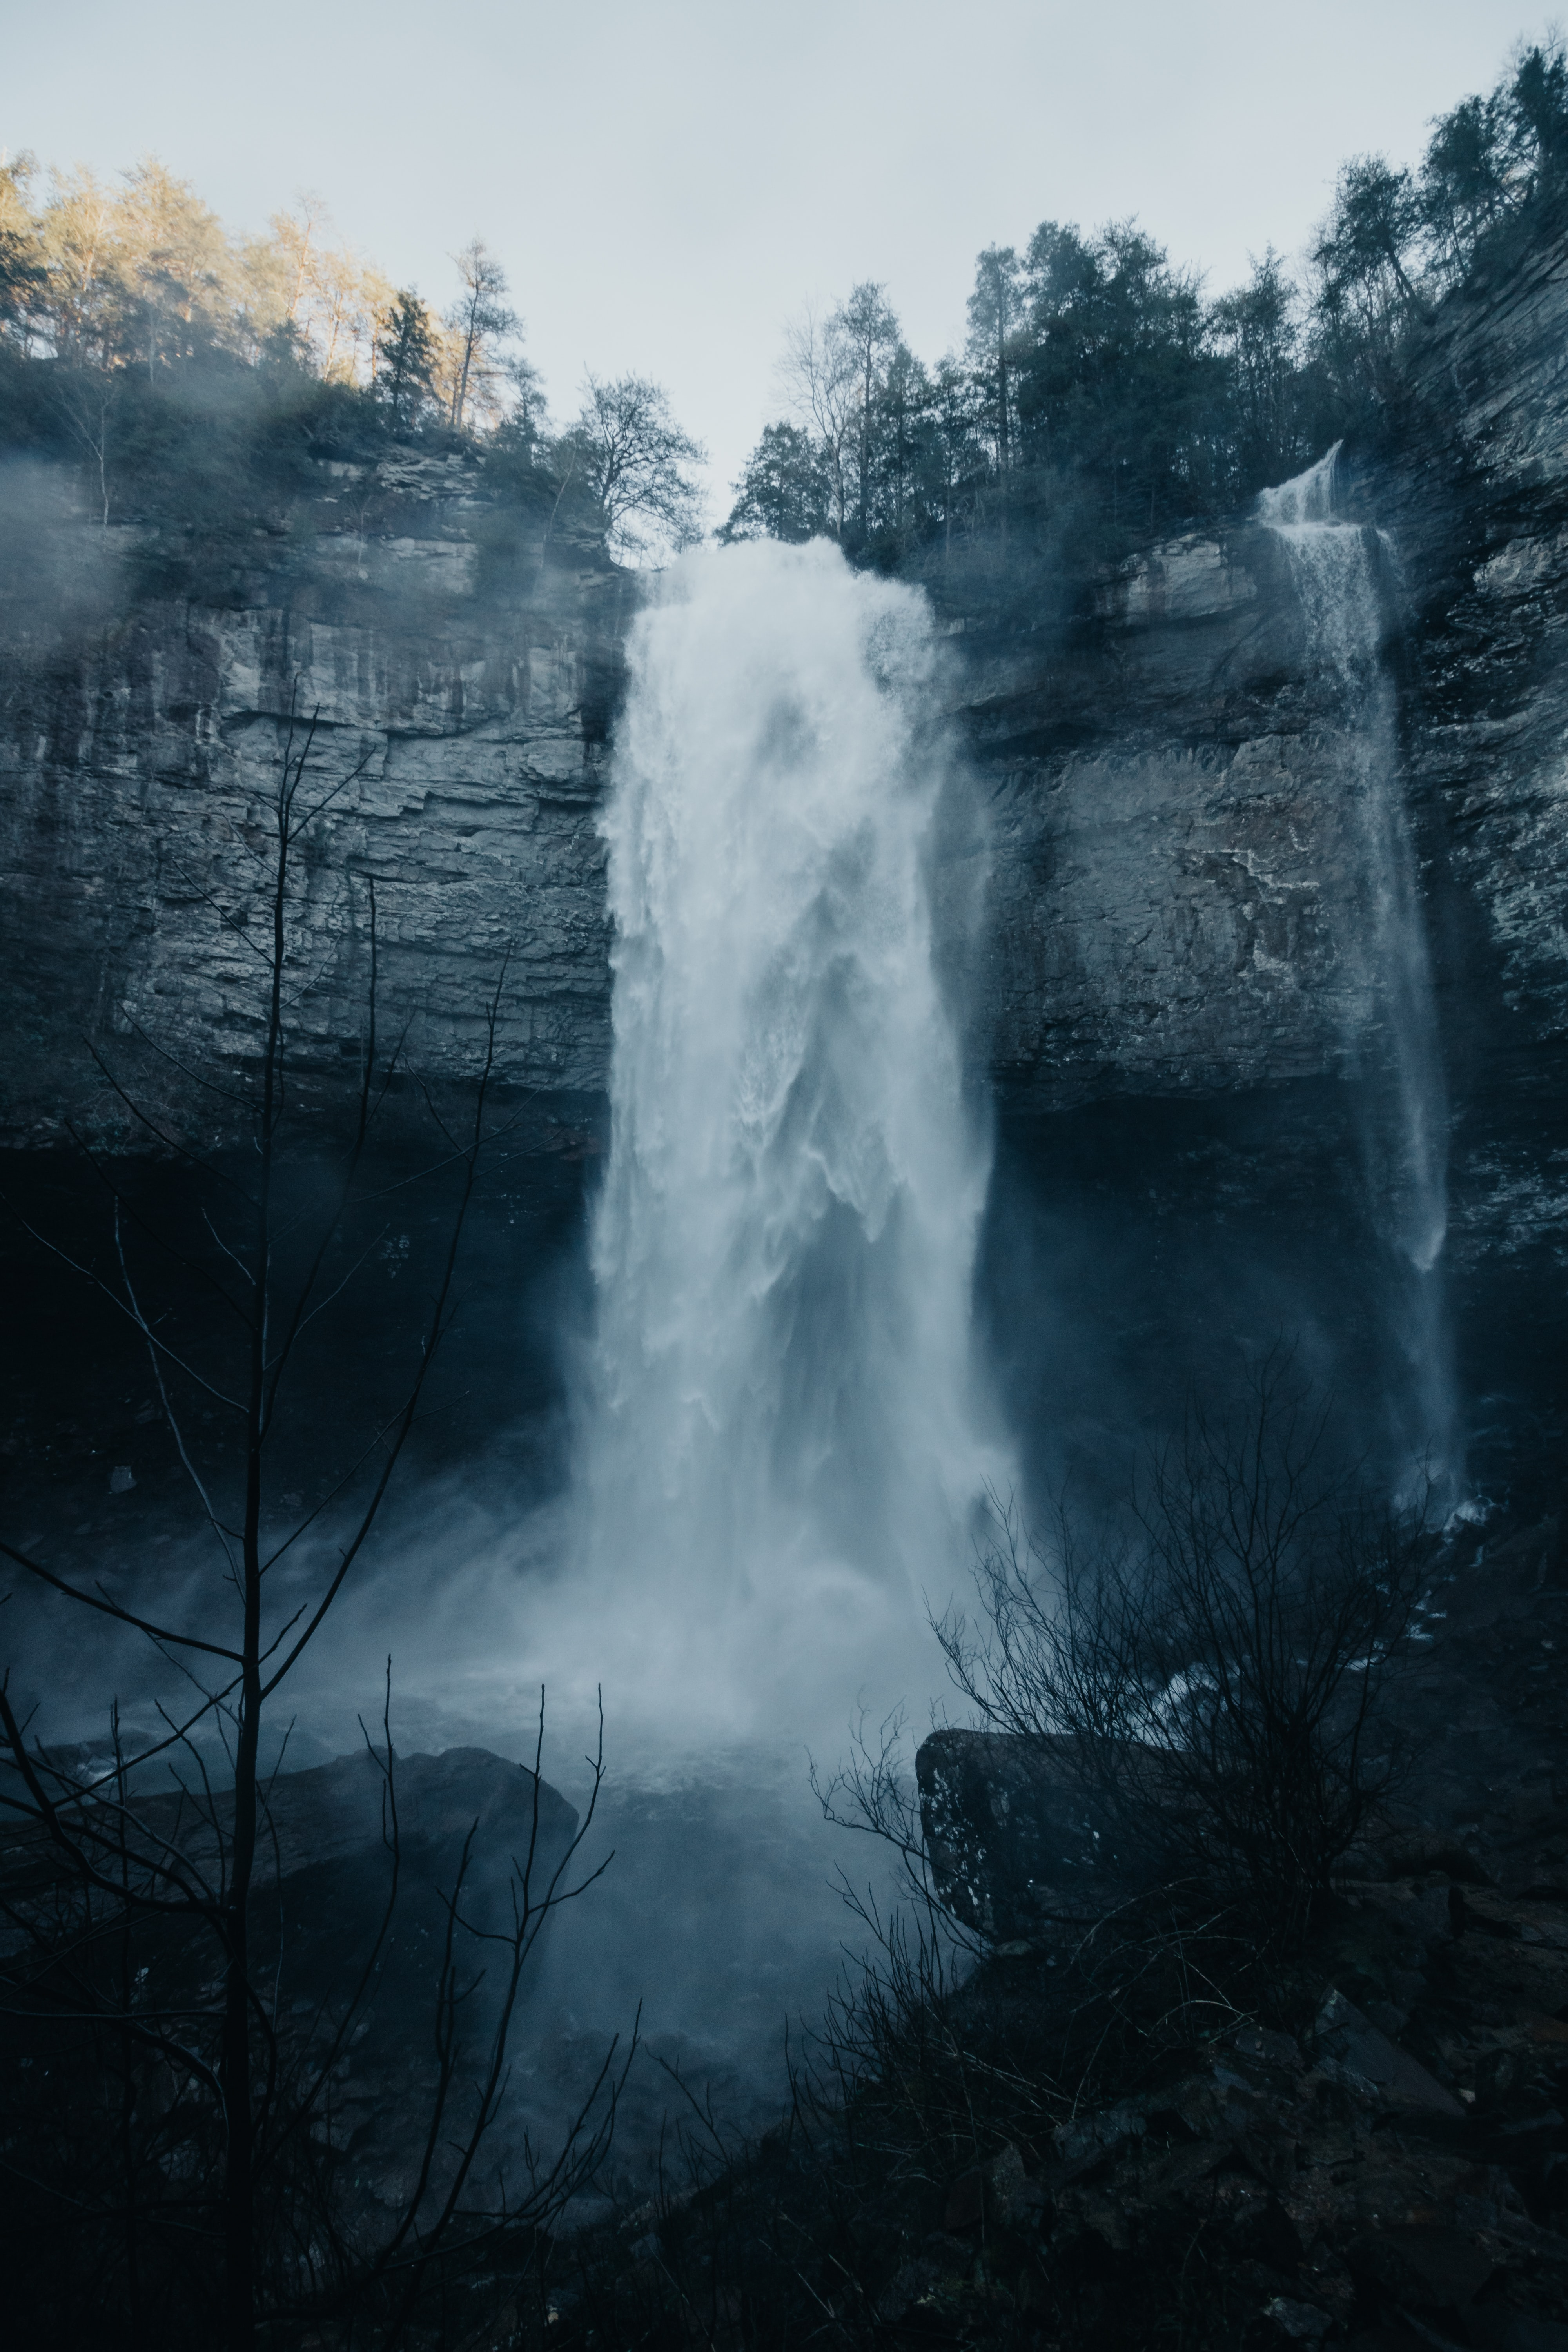 time-lapse photography of waterfalls under white clouds